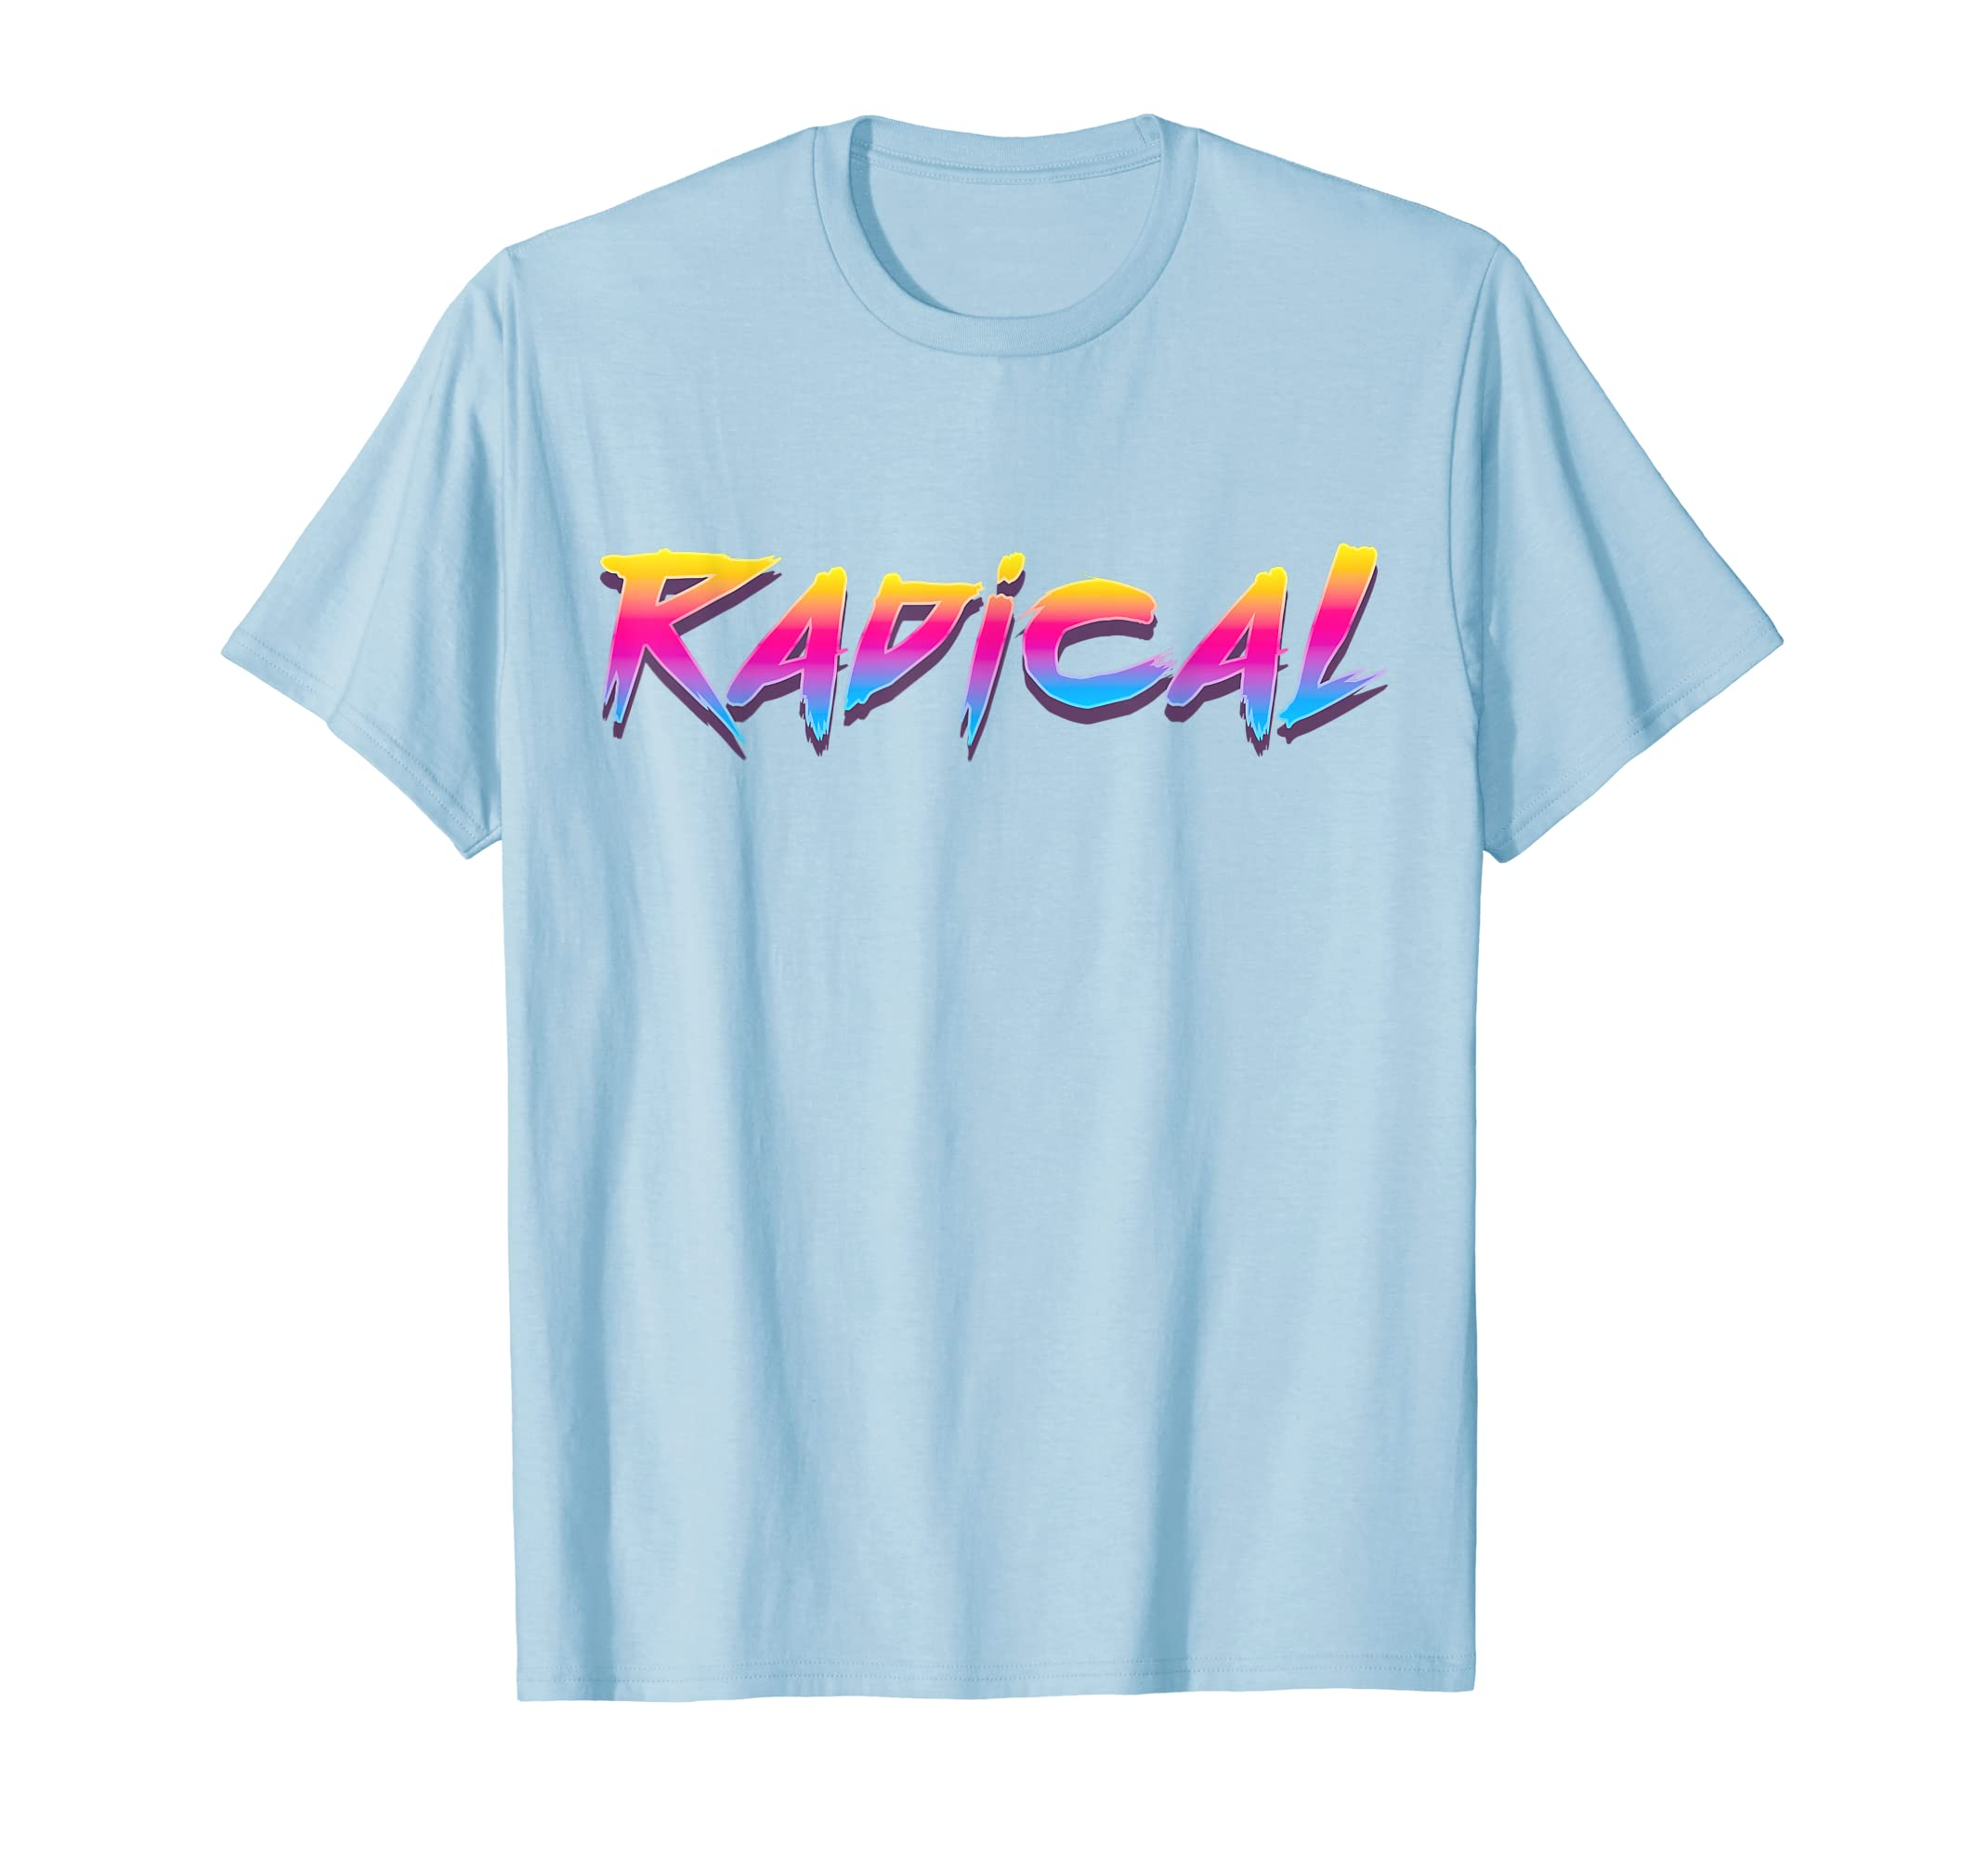 Radical Retro 80s 90s Vintage Look T-Shirt: Outrun Synthwave-Loveshirt